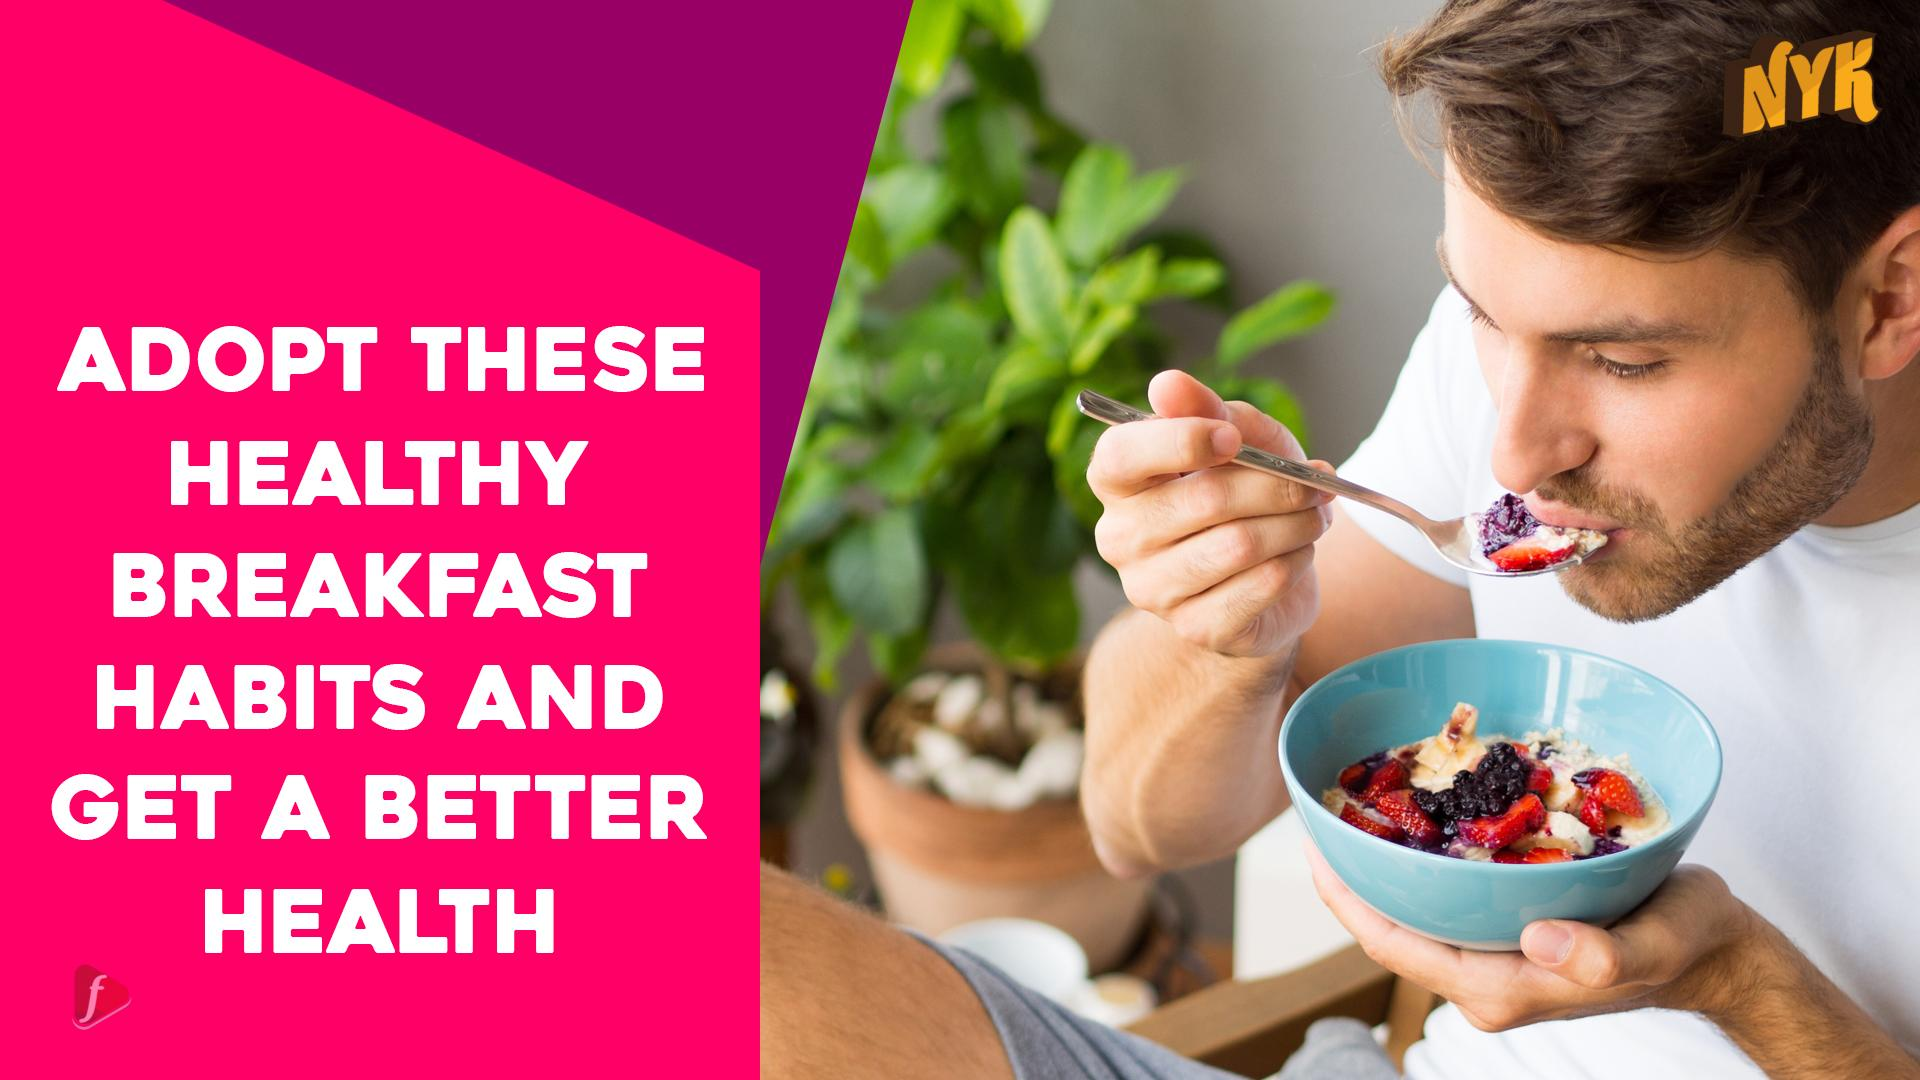 Top 3 Breakfast Habits You Should Adopt For Better Health [Video]